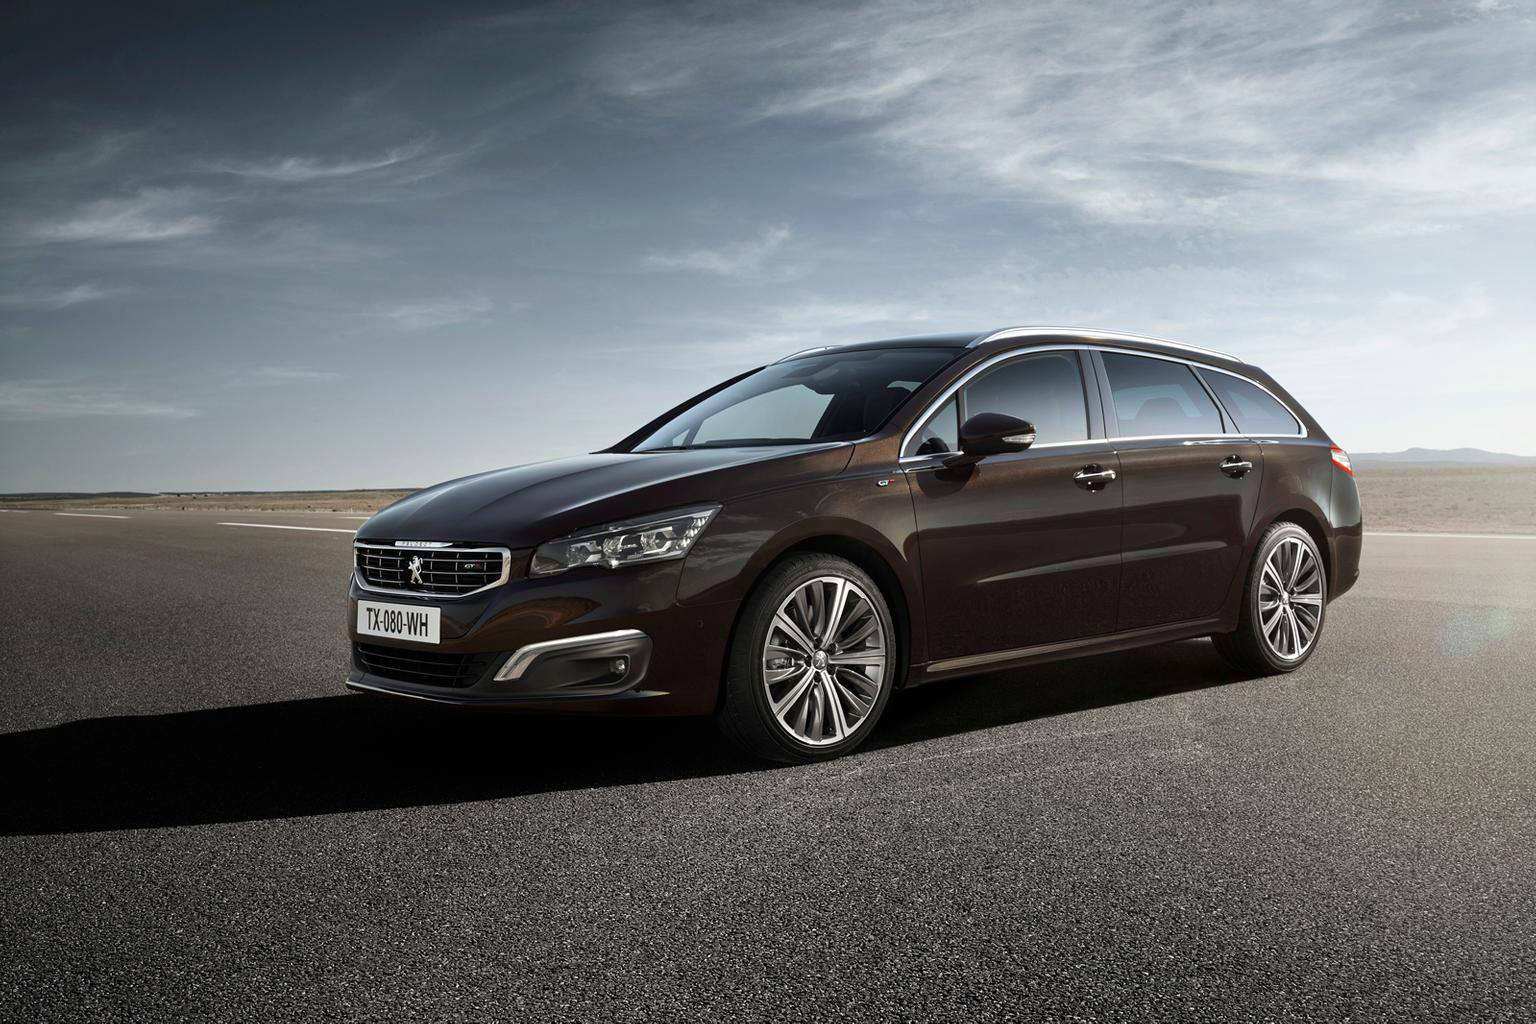 W superbly 2014 Peugeot 508 SW review | What Car? VH83